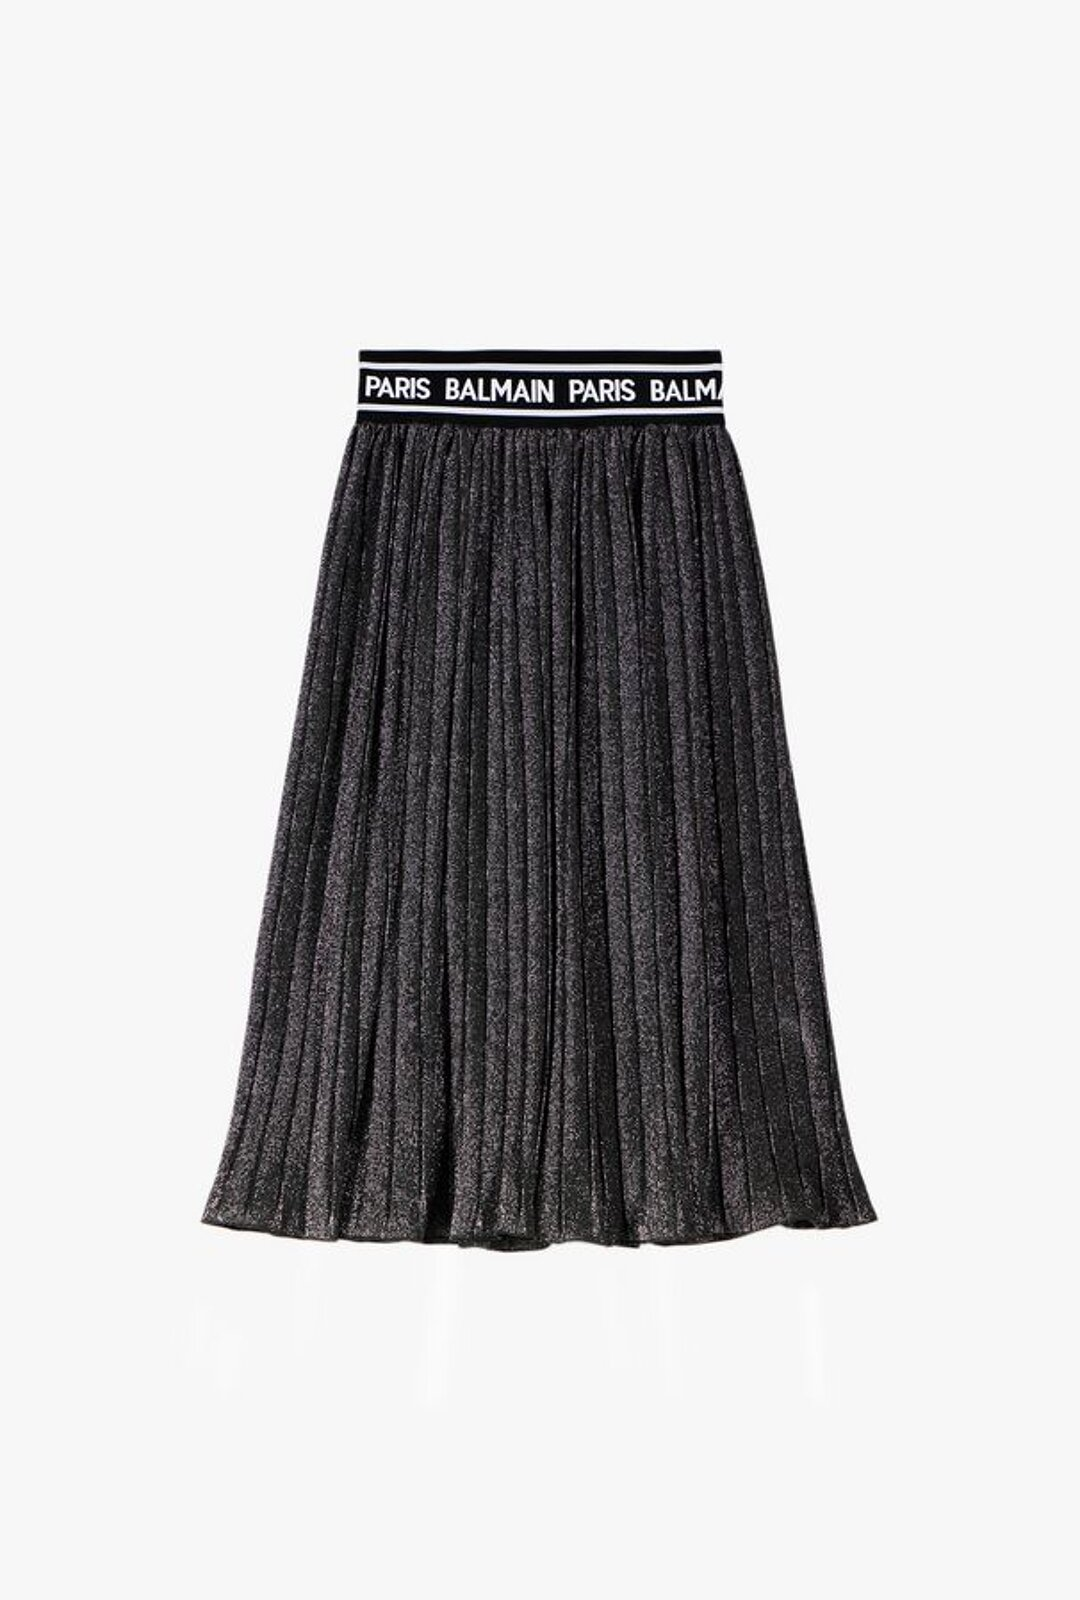 Pleated Skirt With Balmain Logo Print - Balmain Junior